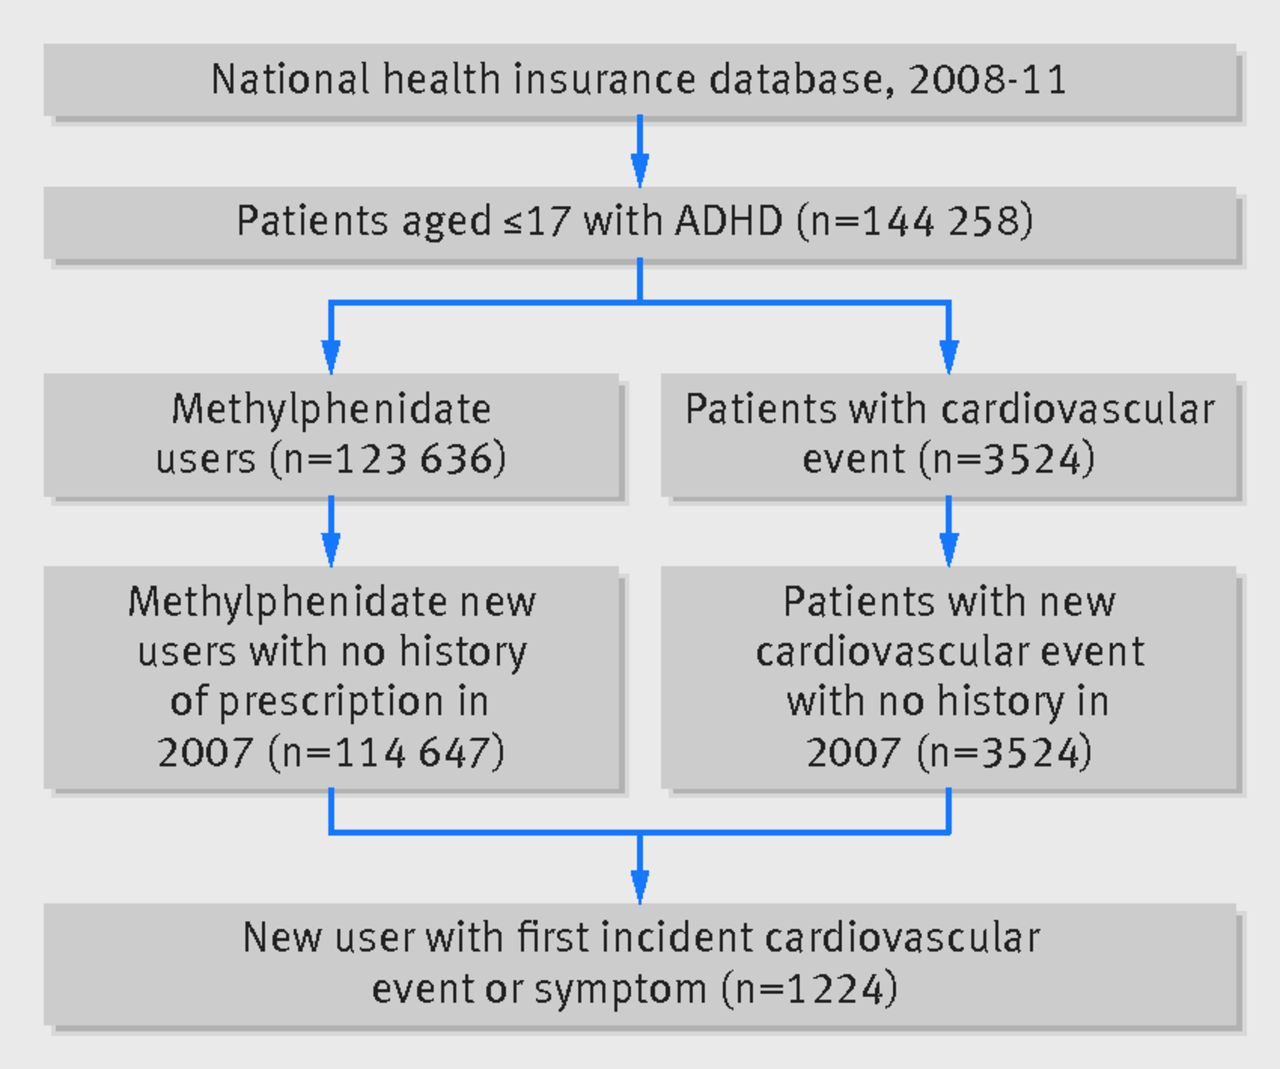 Problems of Overdiagnosis and Overprescribing in ADHD